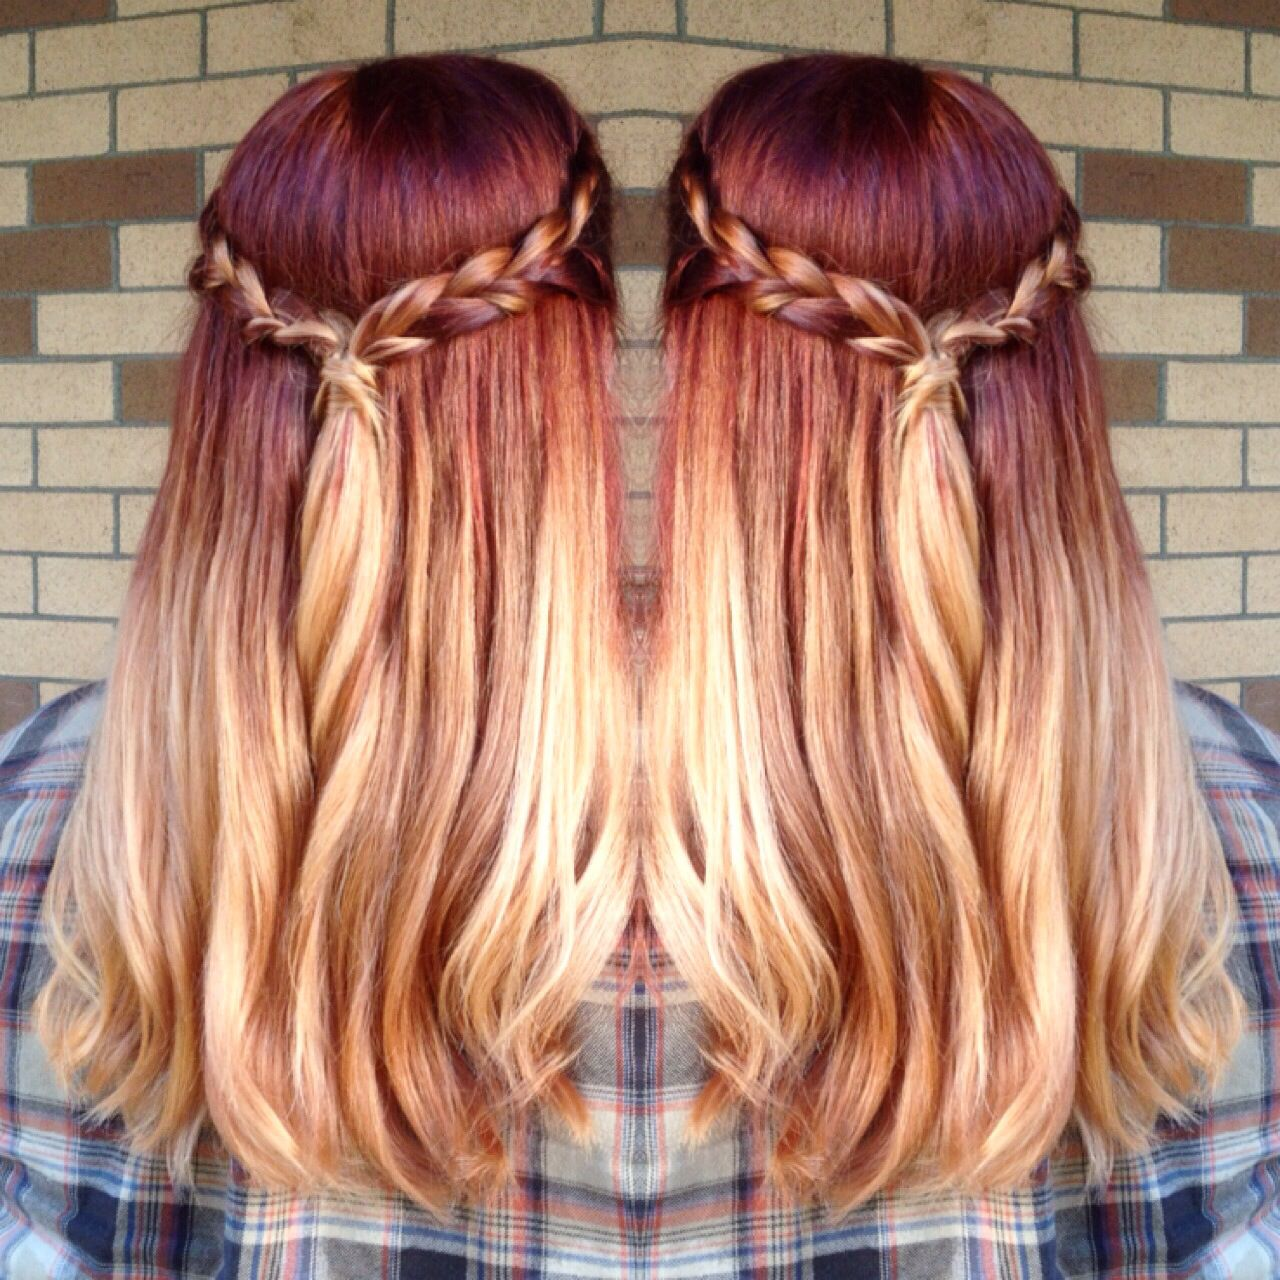 Rich Deep Red Roots With Blonde Ombre By Emily Field Ombre Hair Blonde Baylage Hair Red Ombre Hair